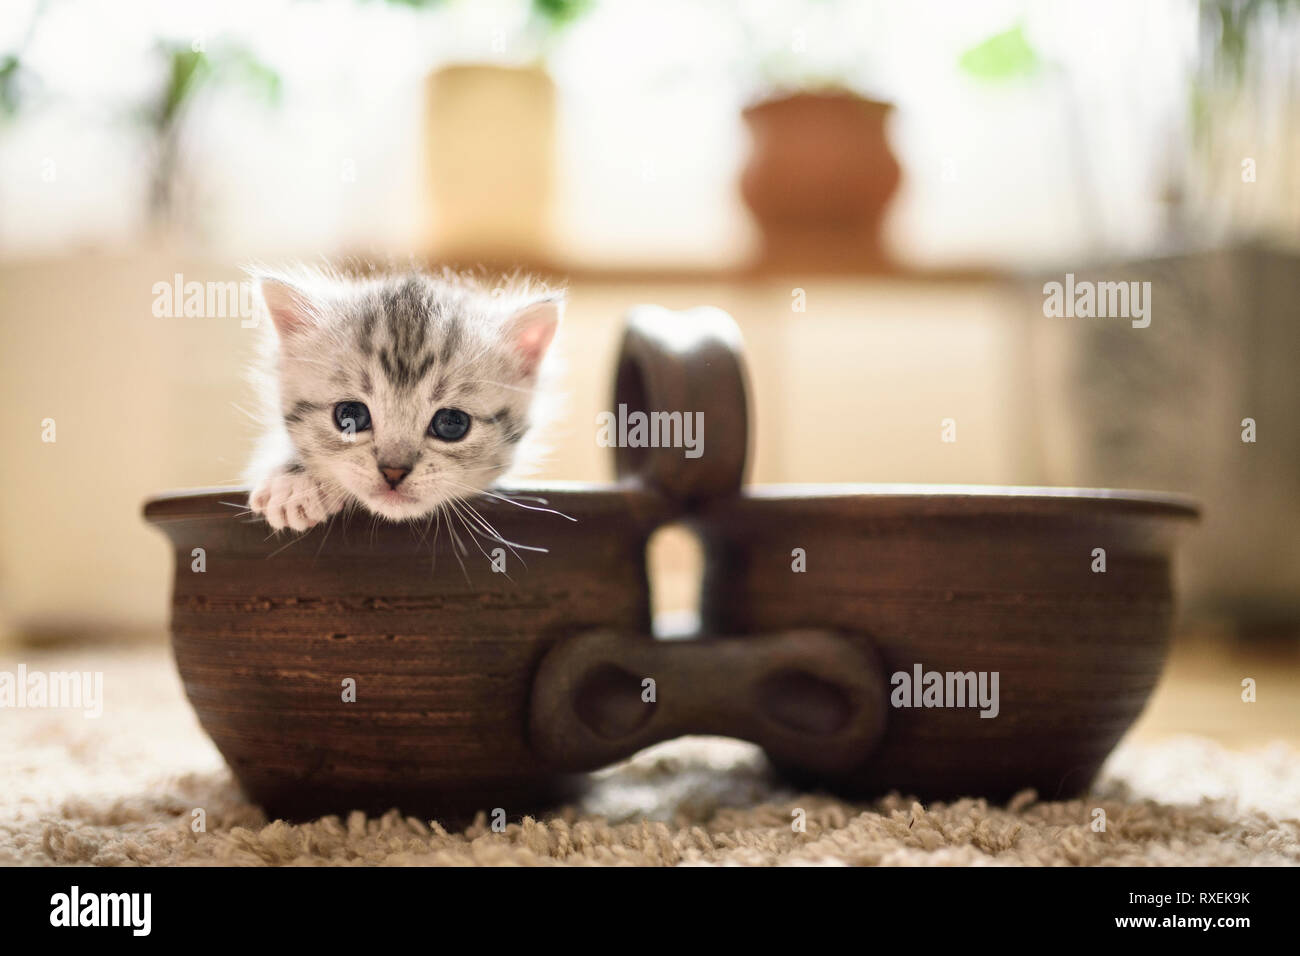 Funny small grey kitten put out his cute head and paw from the pot and looks with his lovely eyes in camera.	 - Stock Image